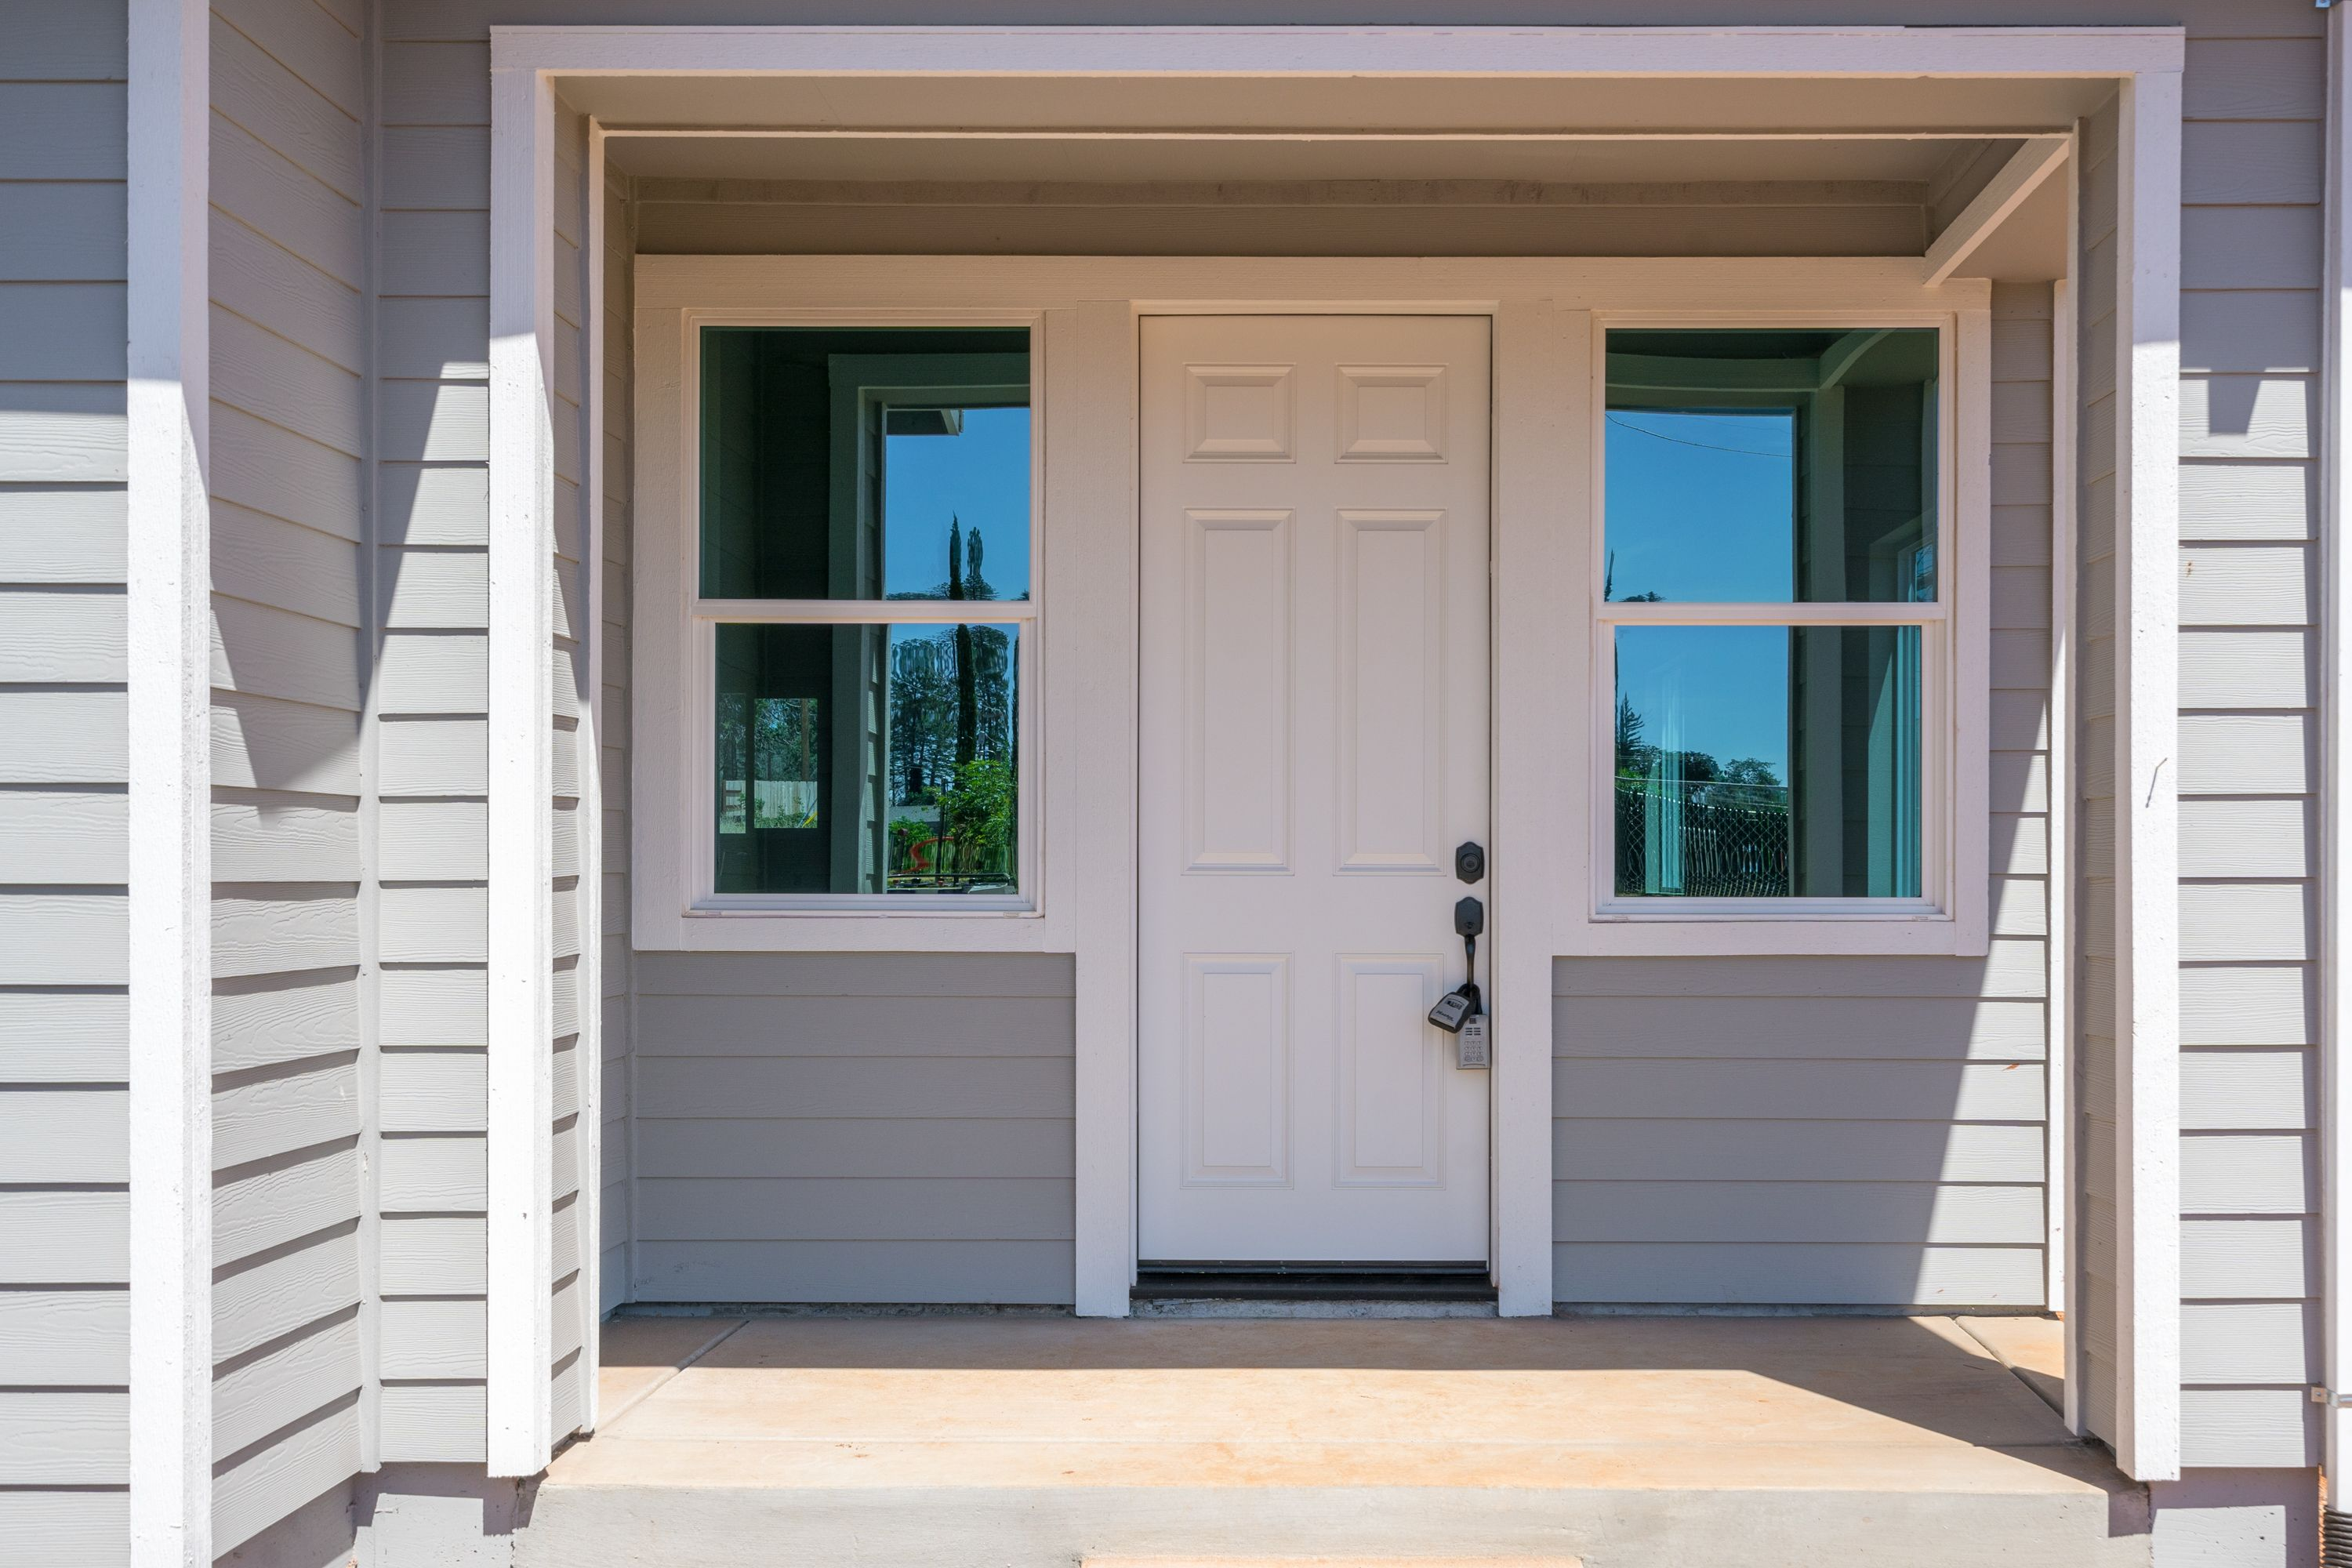 Exterior featured in the 280 Craft Lane By Silvermark Luxury Homes in Chico, CA